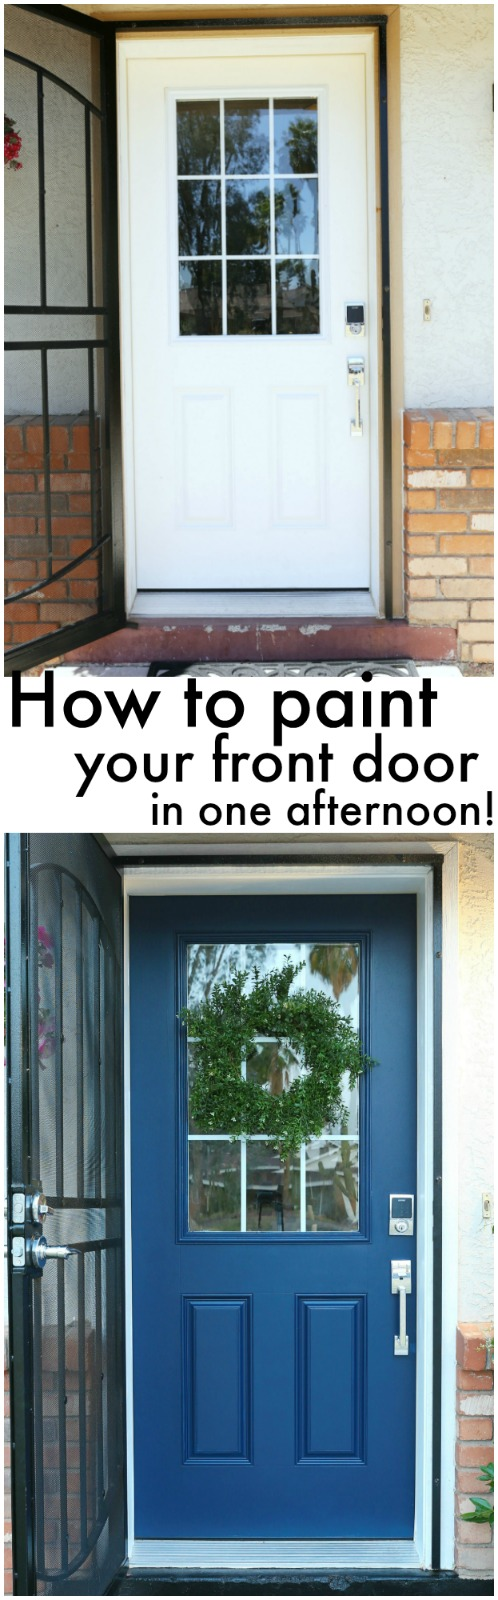 How to paint your front door - www.classyclutter.net